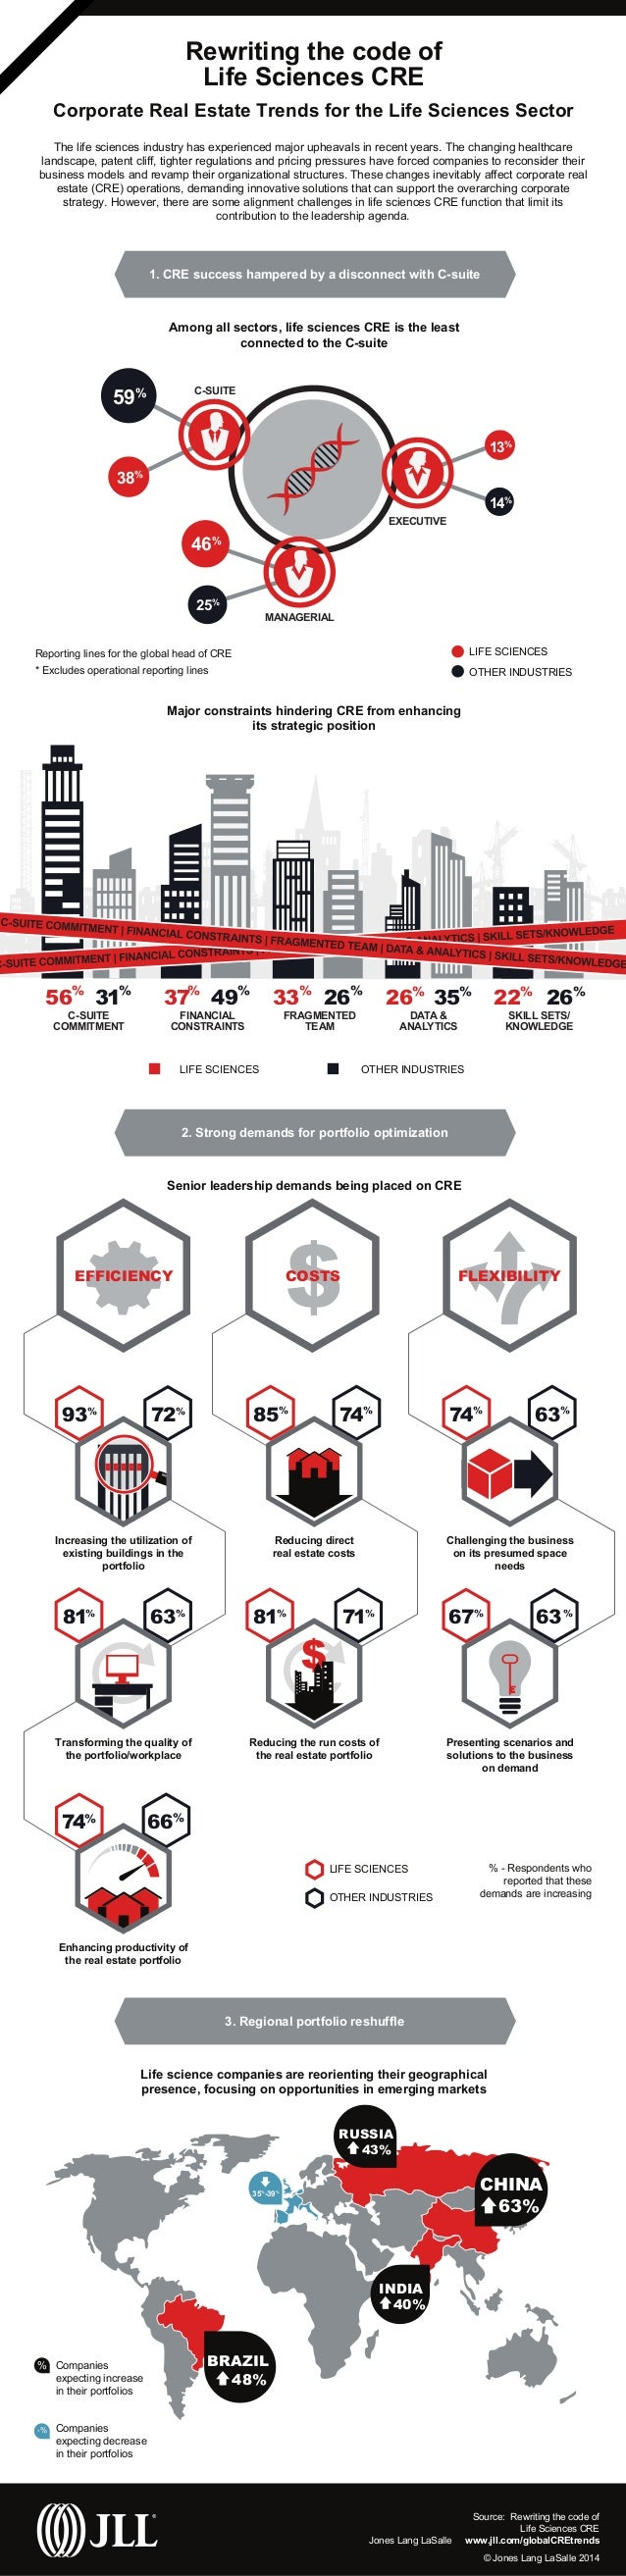 © Jones Lang LaSalle 2014 Rewriting the code of Life Sciences CRE Corporate Real Estate Trends for the Life Sciences Secto...